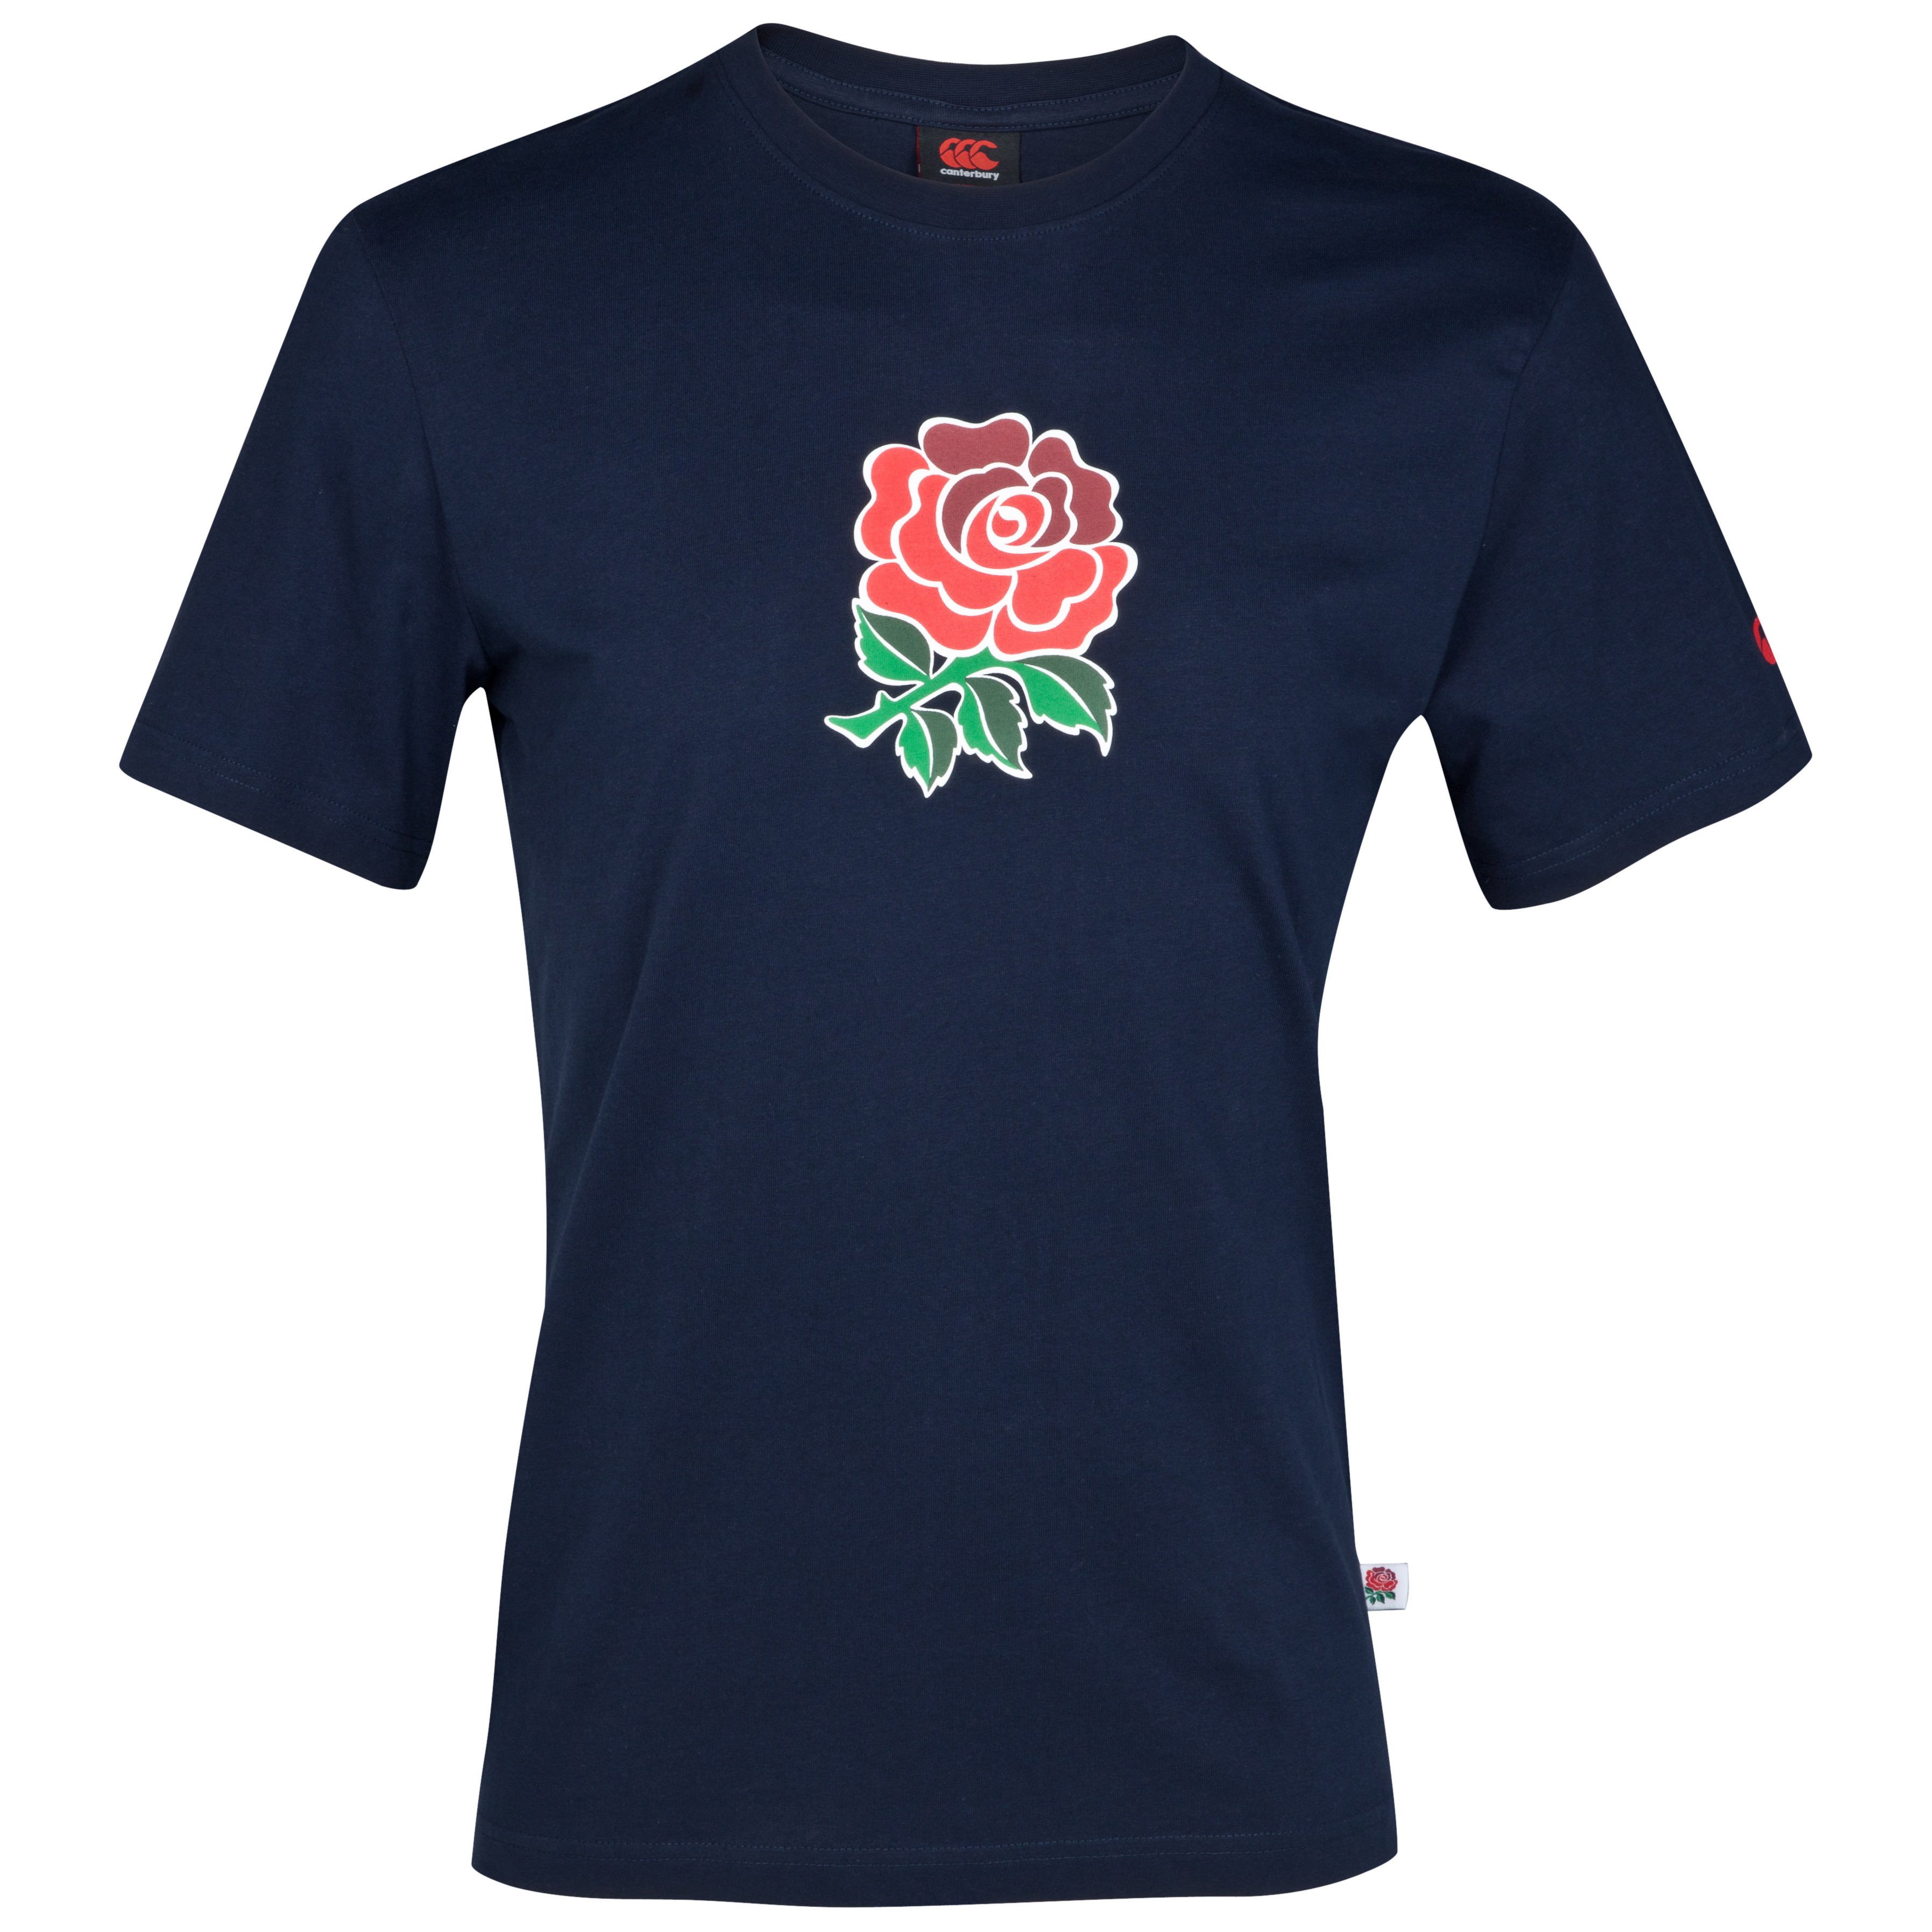 England Graphic Cotton T-Shirt - Youths - Navy